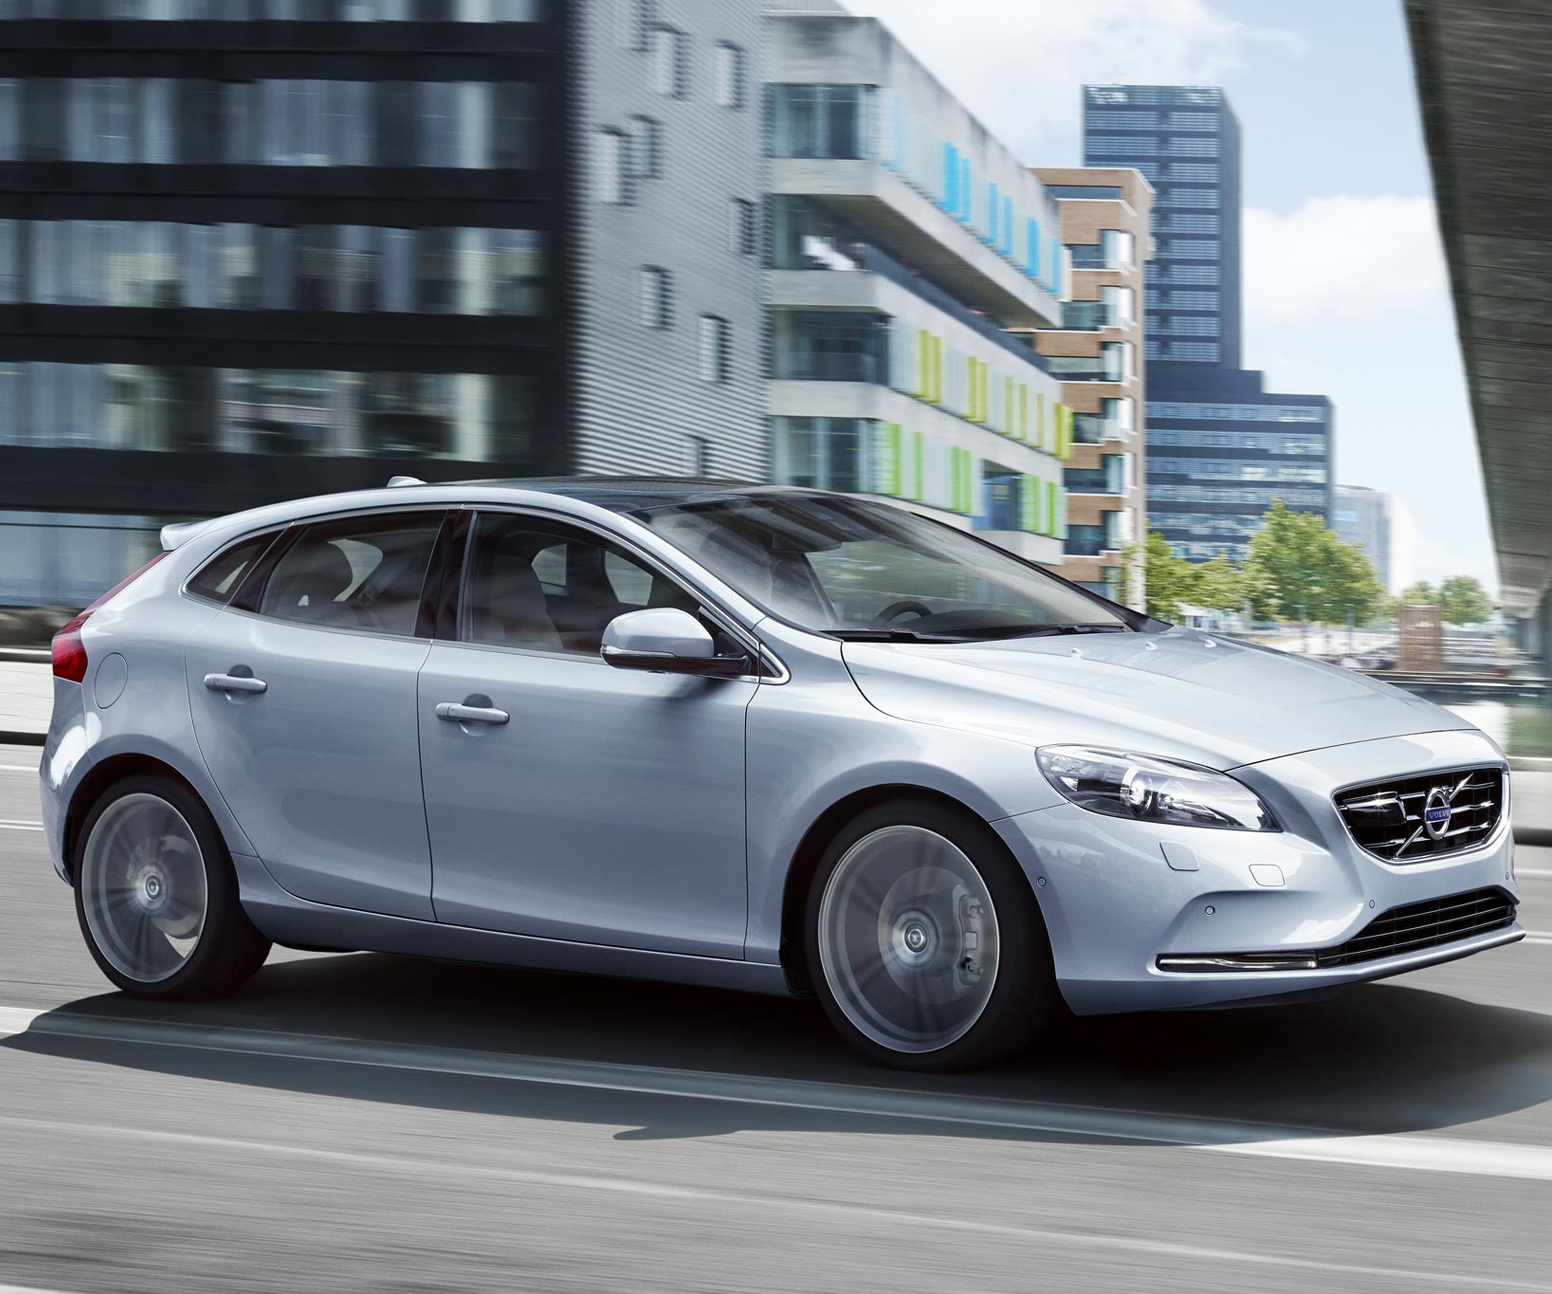 Volvo Auto Sales: New Volvo V40 For Sale In Sydney